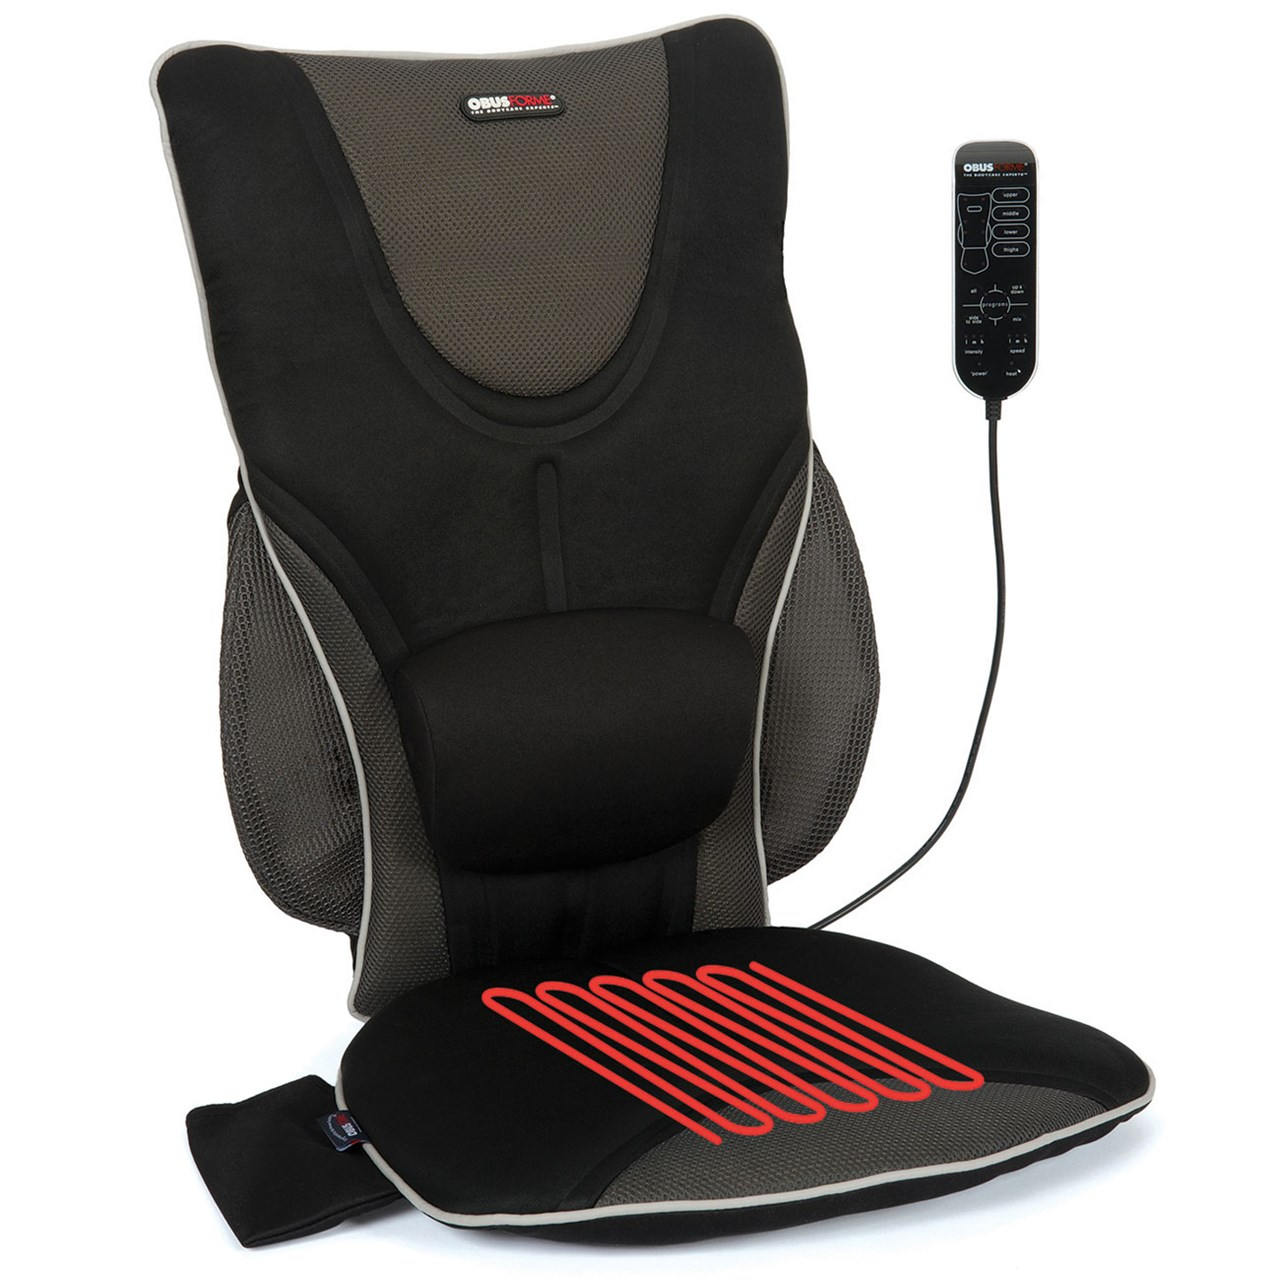 Cushion Chair Back Support Drivers Seat Cushion With Lumbar Pad Heat Massage